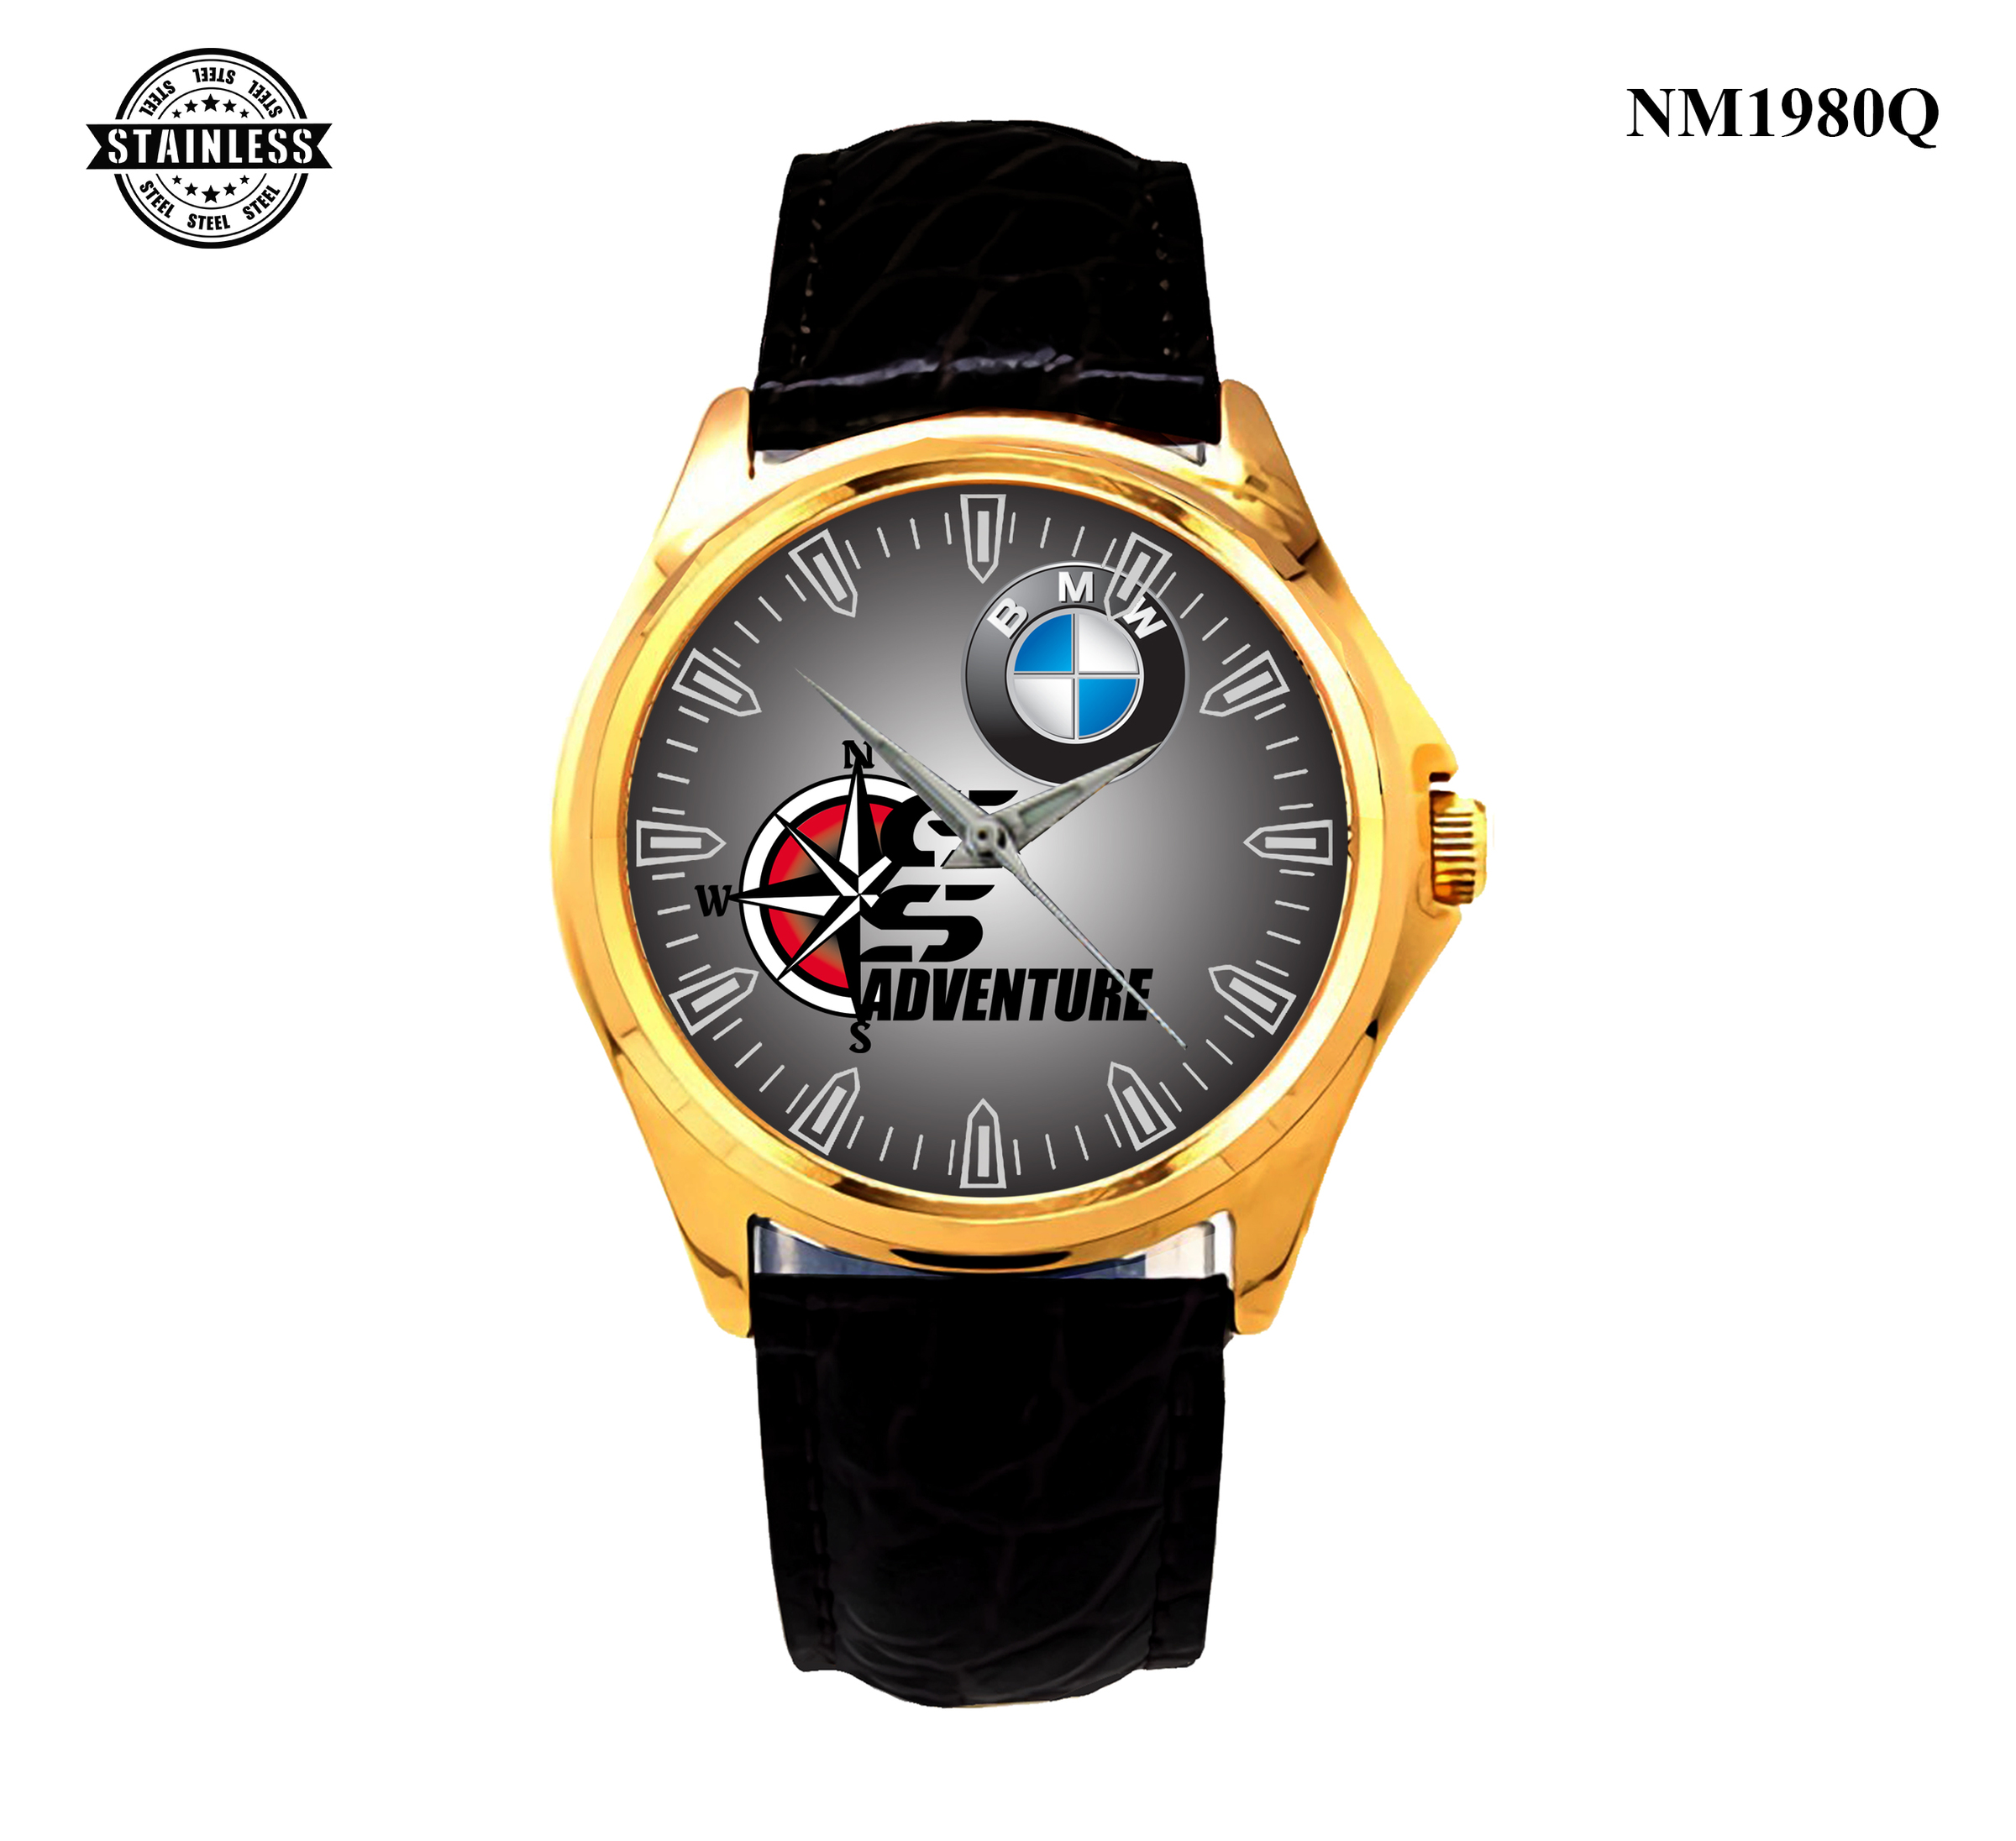 1.10 Mens Jewelery BMW GS ADVENTURE Sport Logo Rare Item Sport Leather Watch Gold.jpg